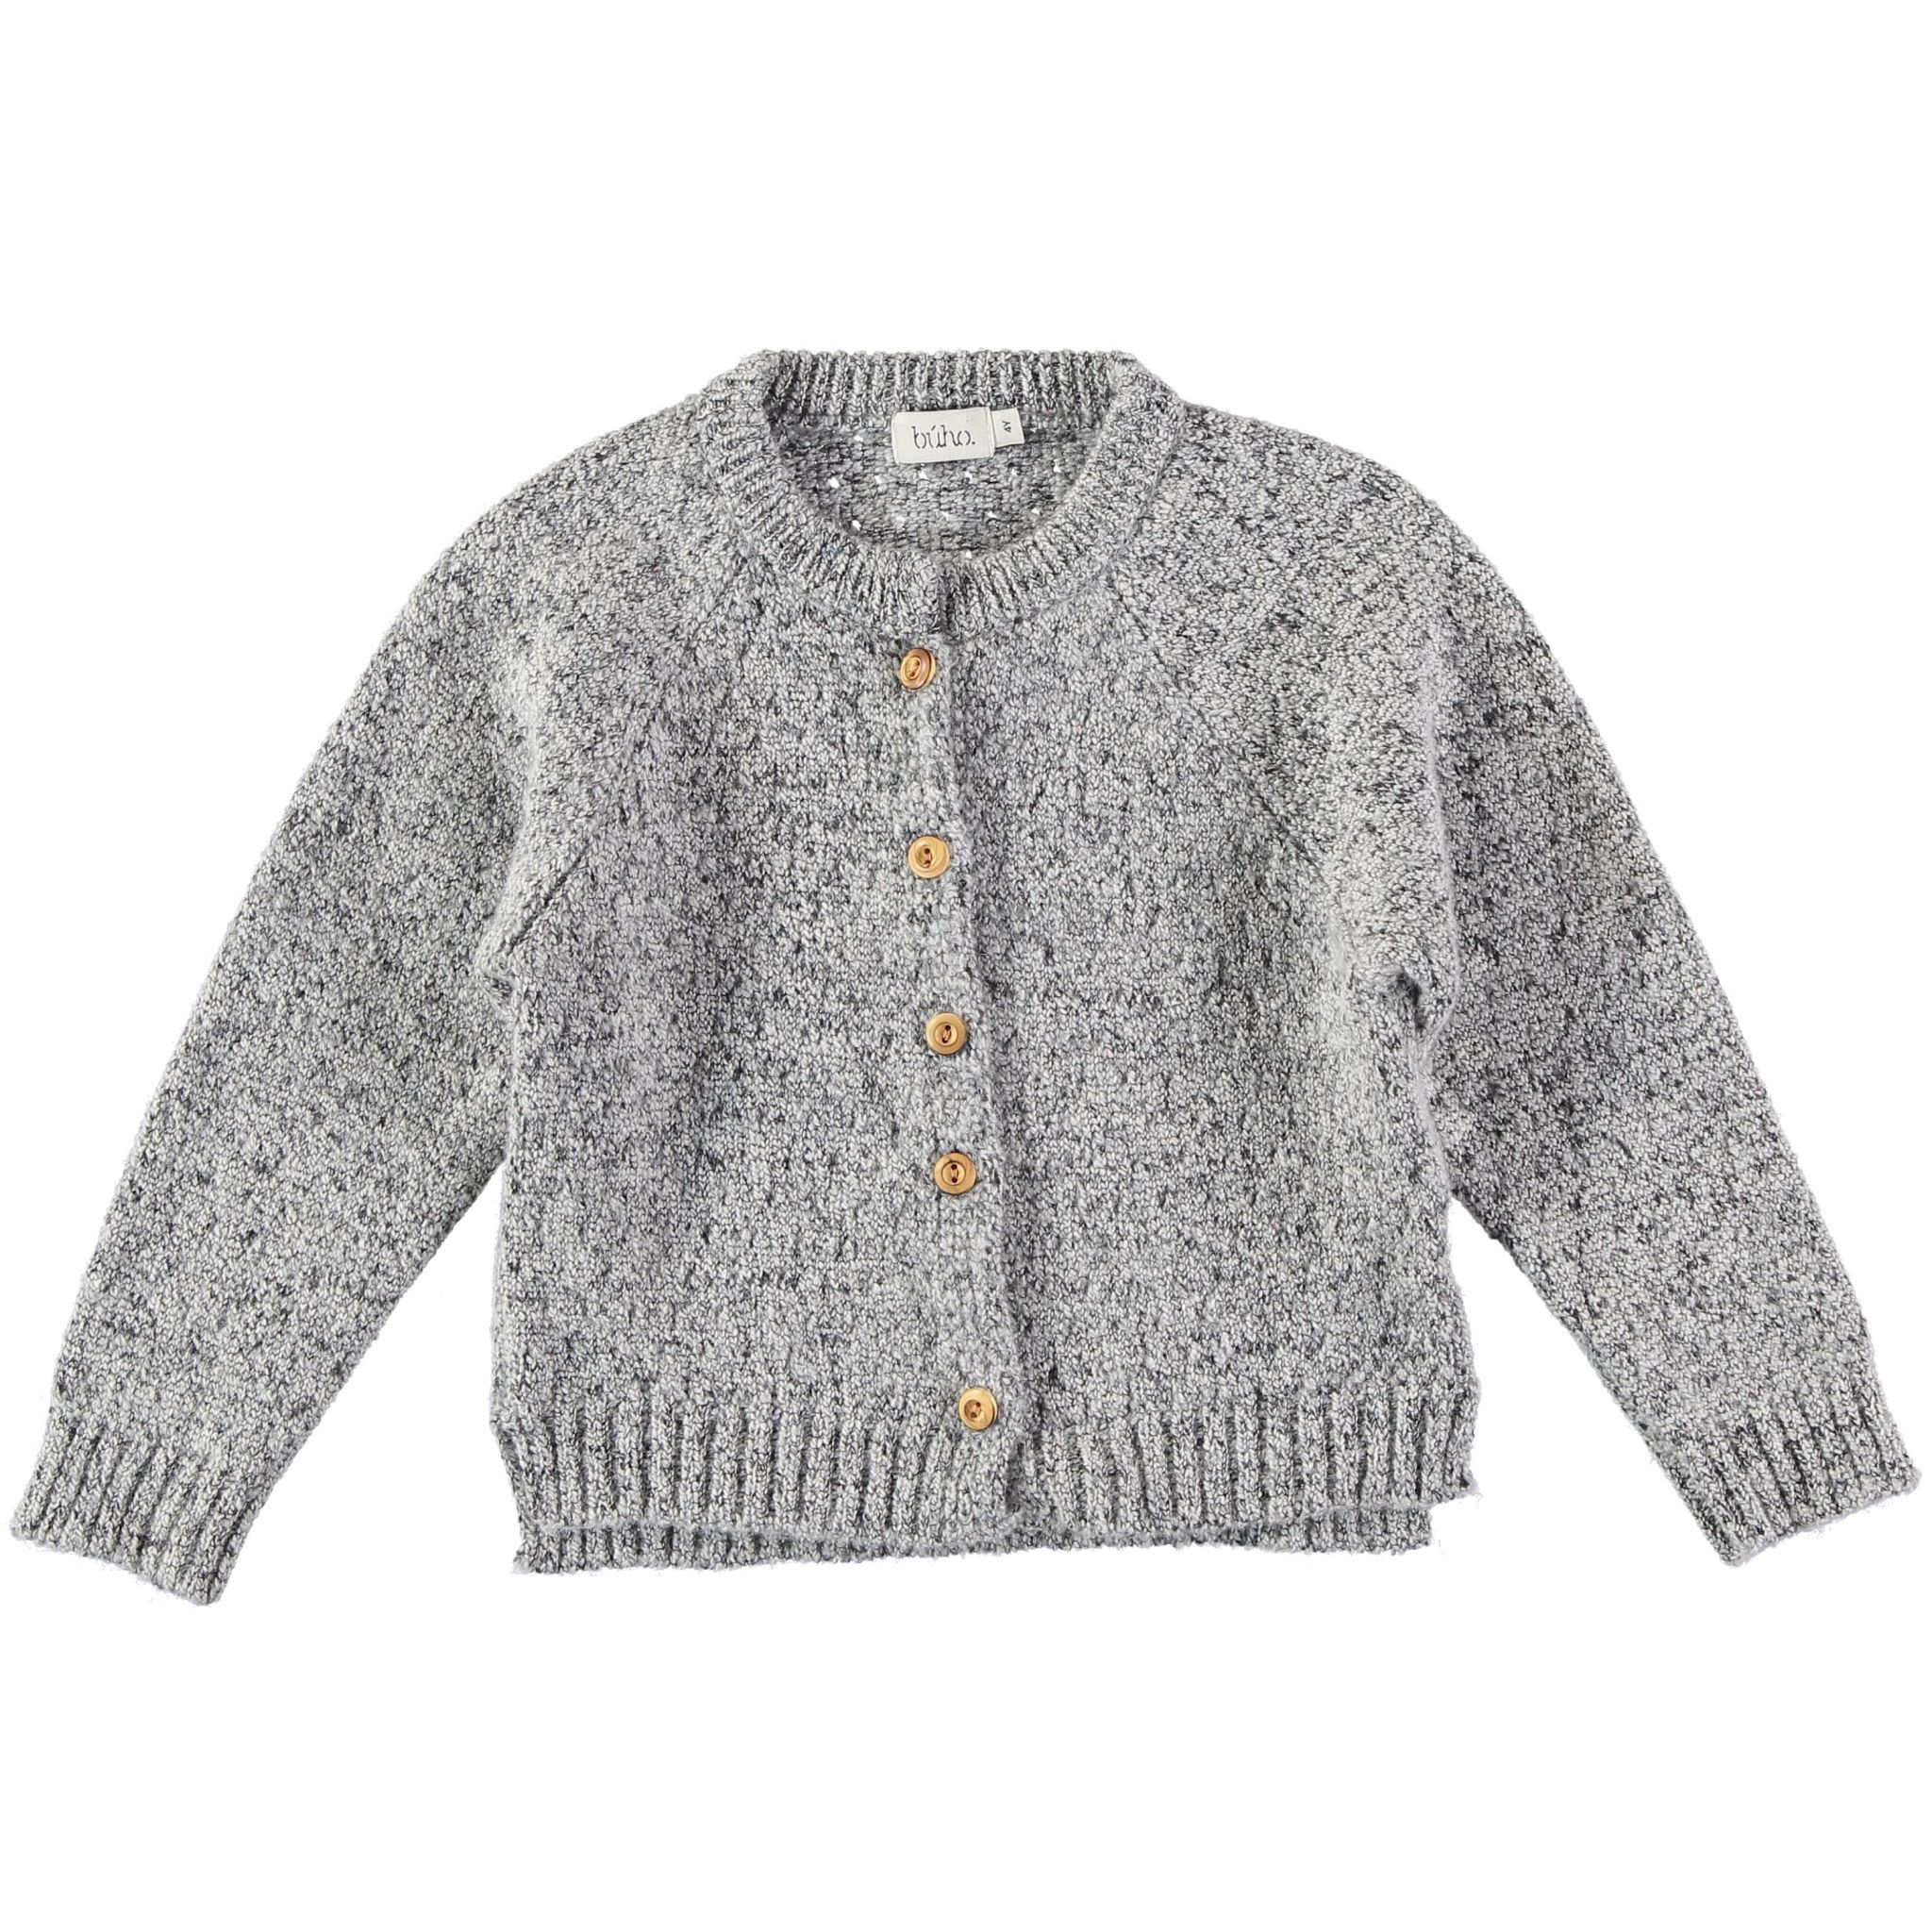 BUHO Karine Cable Stitch Cardigan